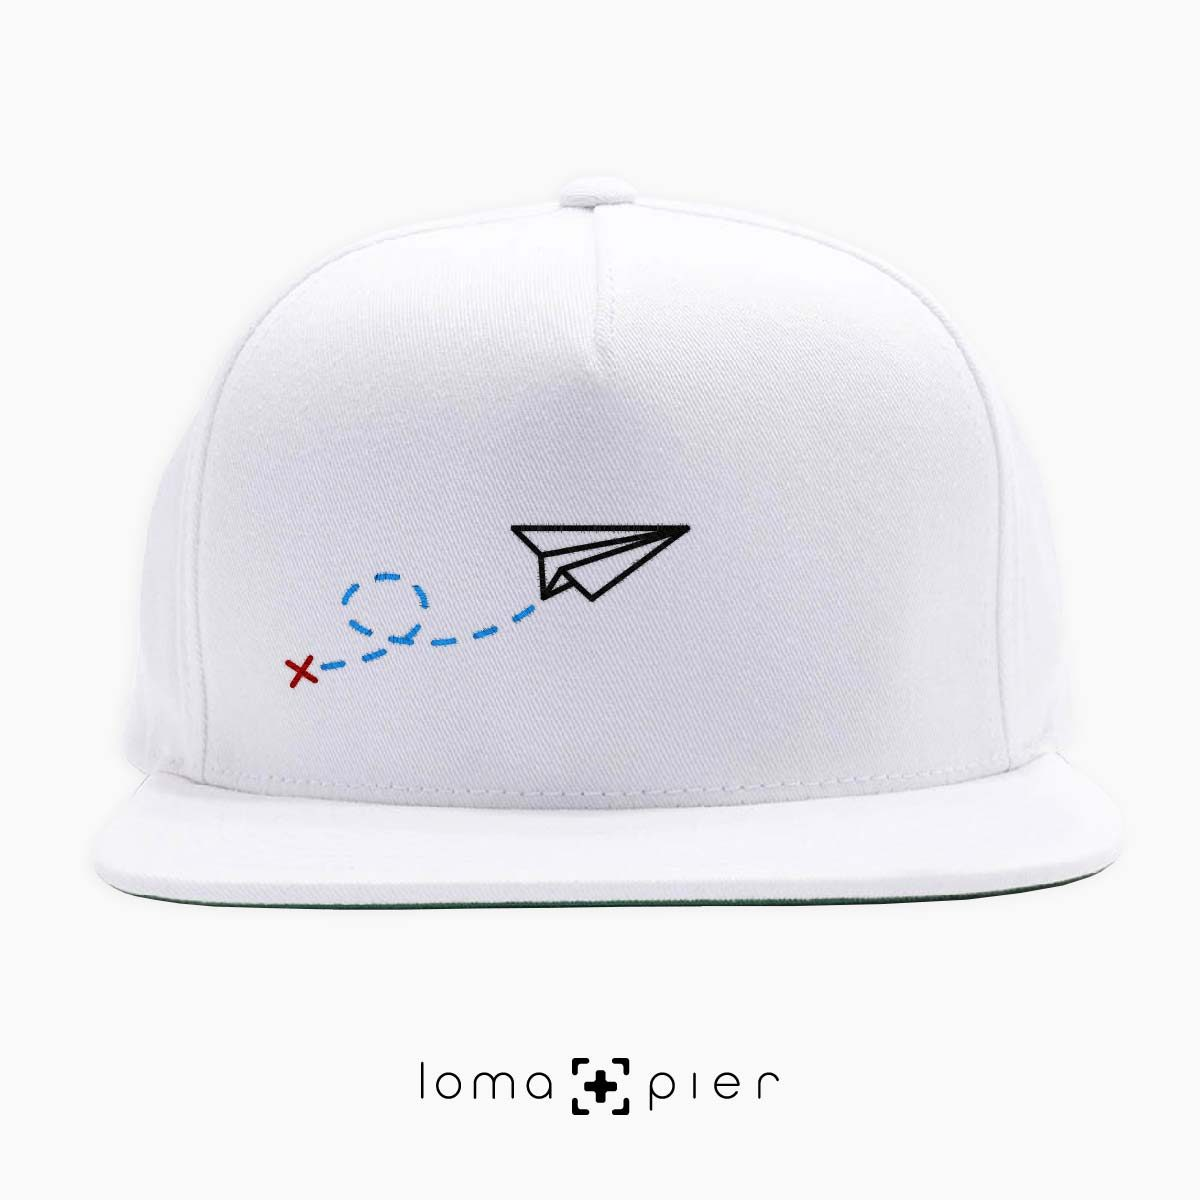 PAPER AIRPLANE icon embroidered on a white classic snapback hat by loma+pier hat store